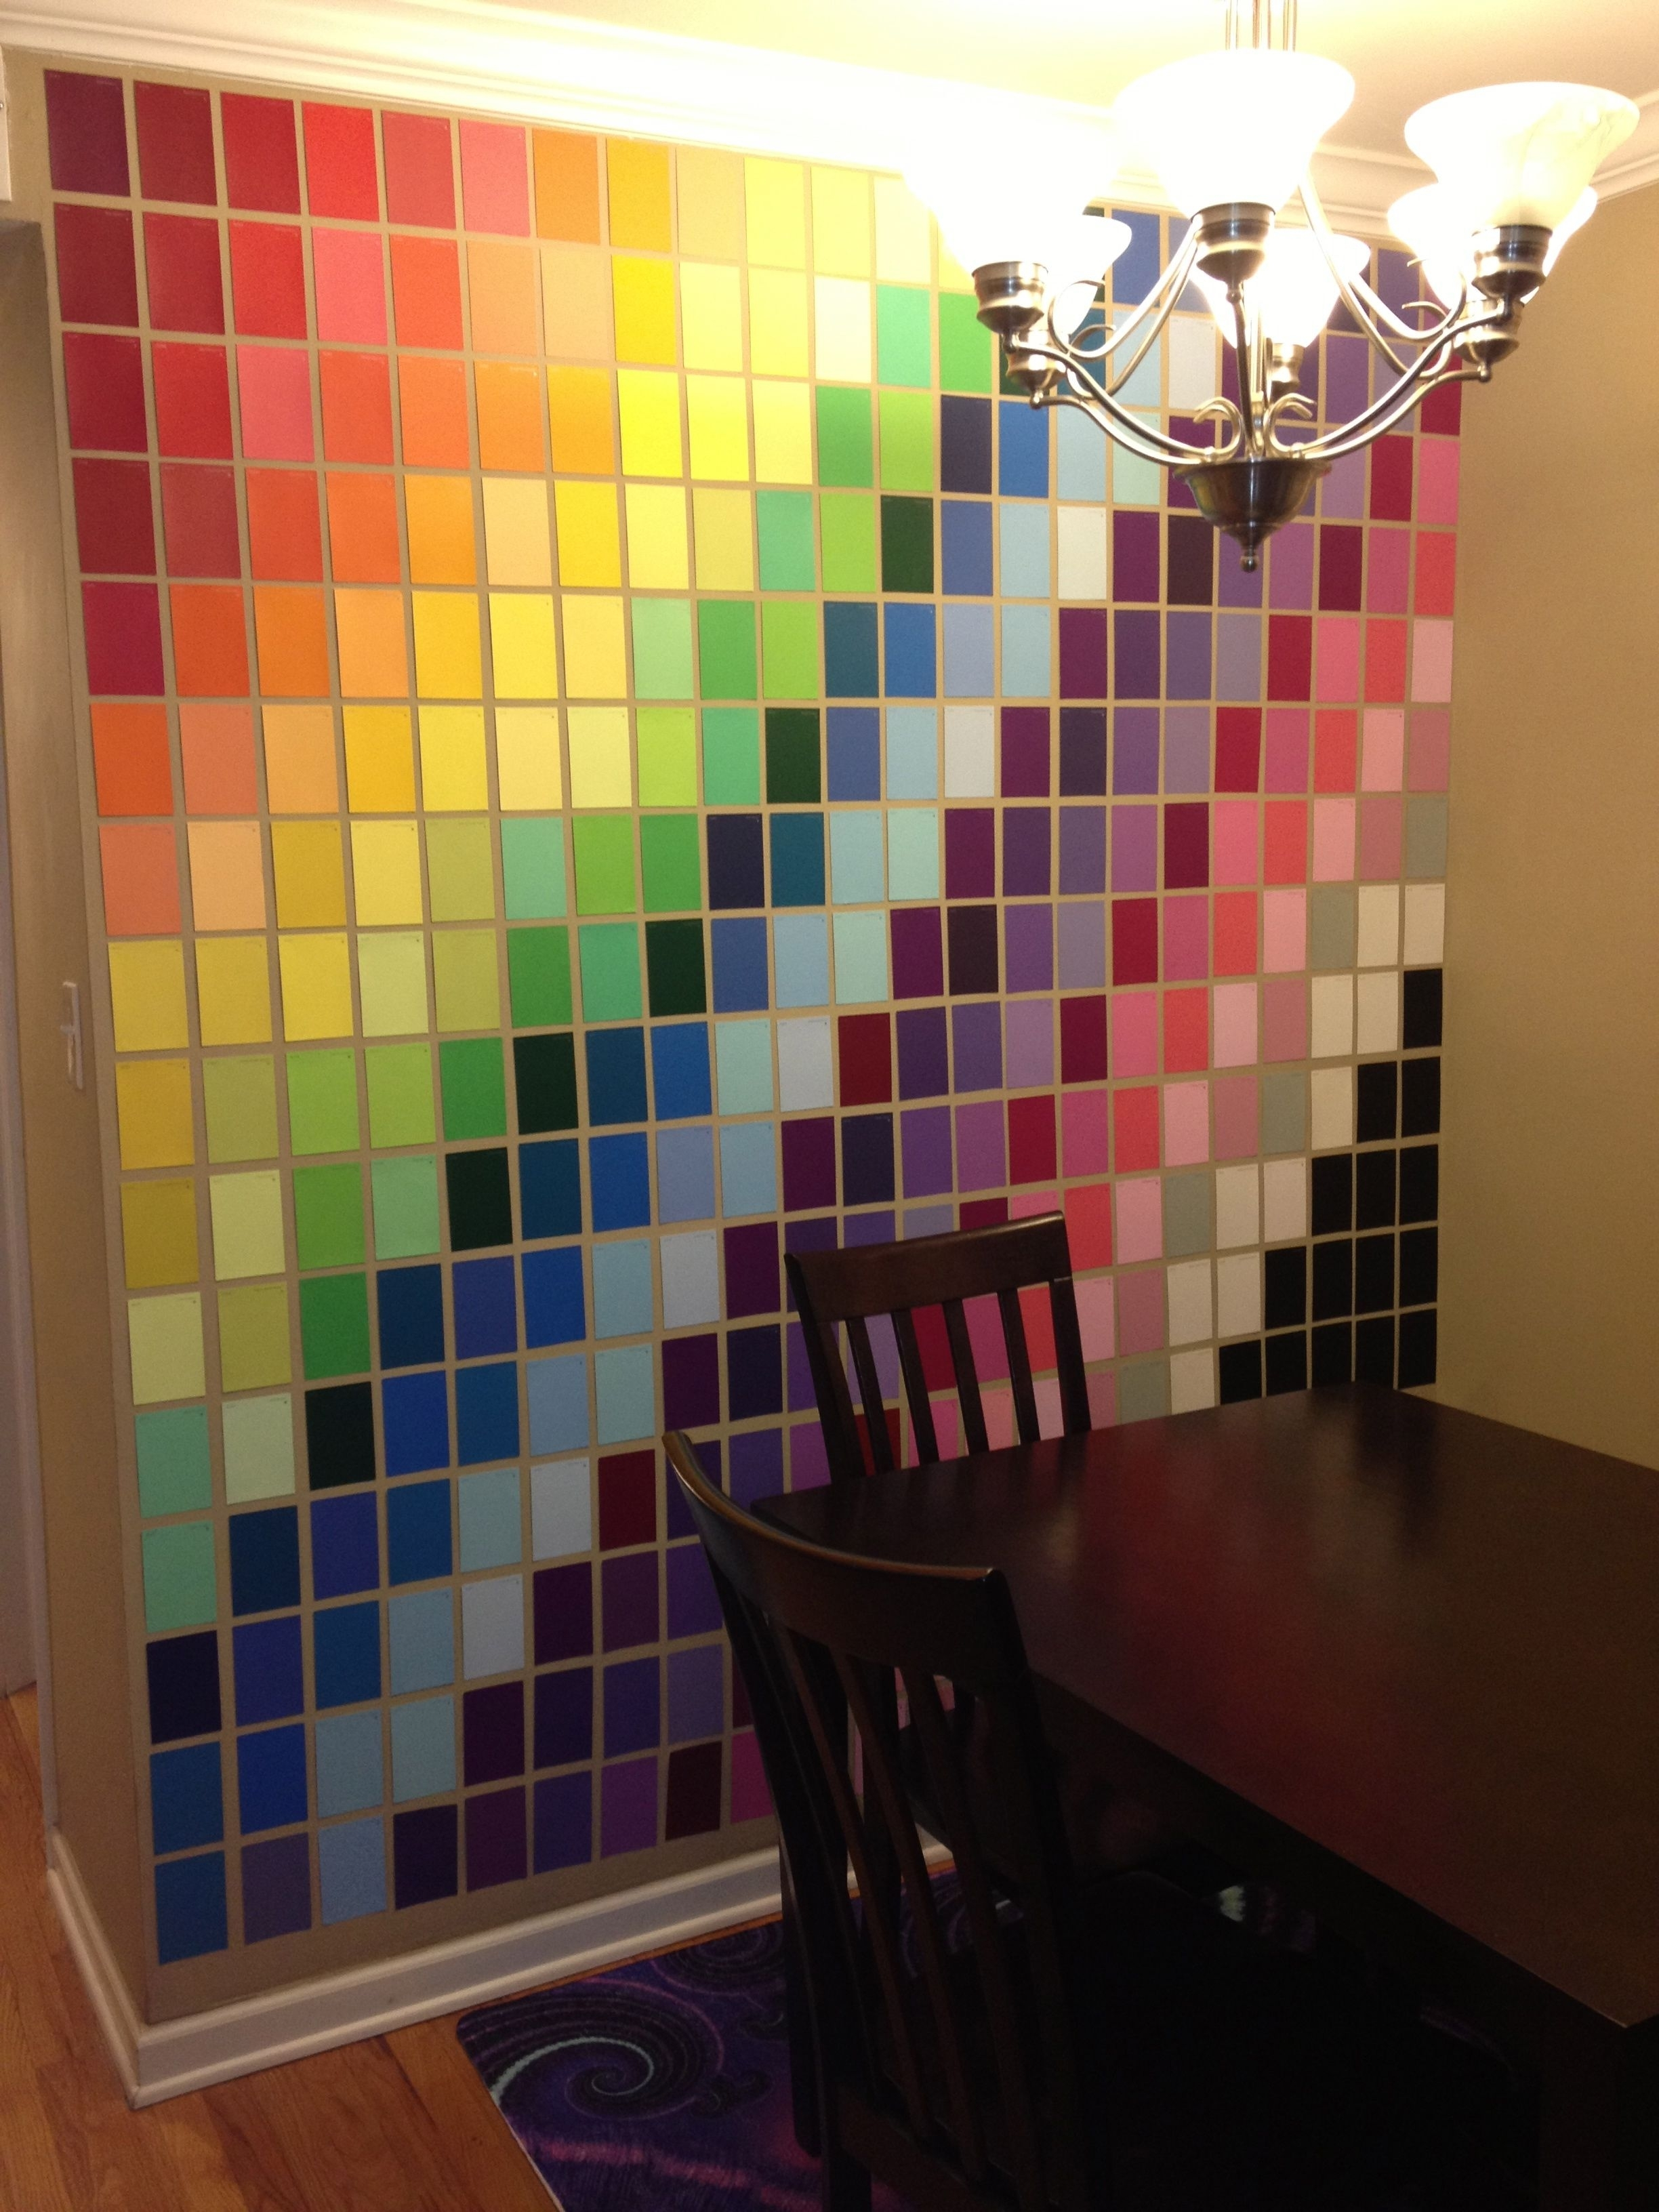 Wall Art Made With Paint Samples From Home Depot (View 9 of 15)